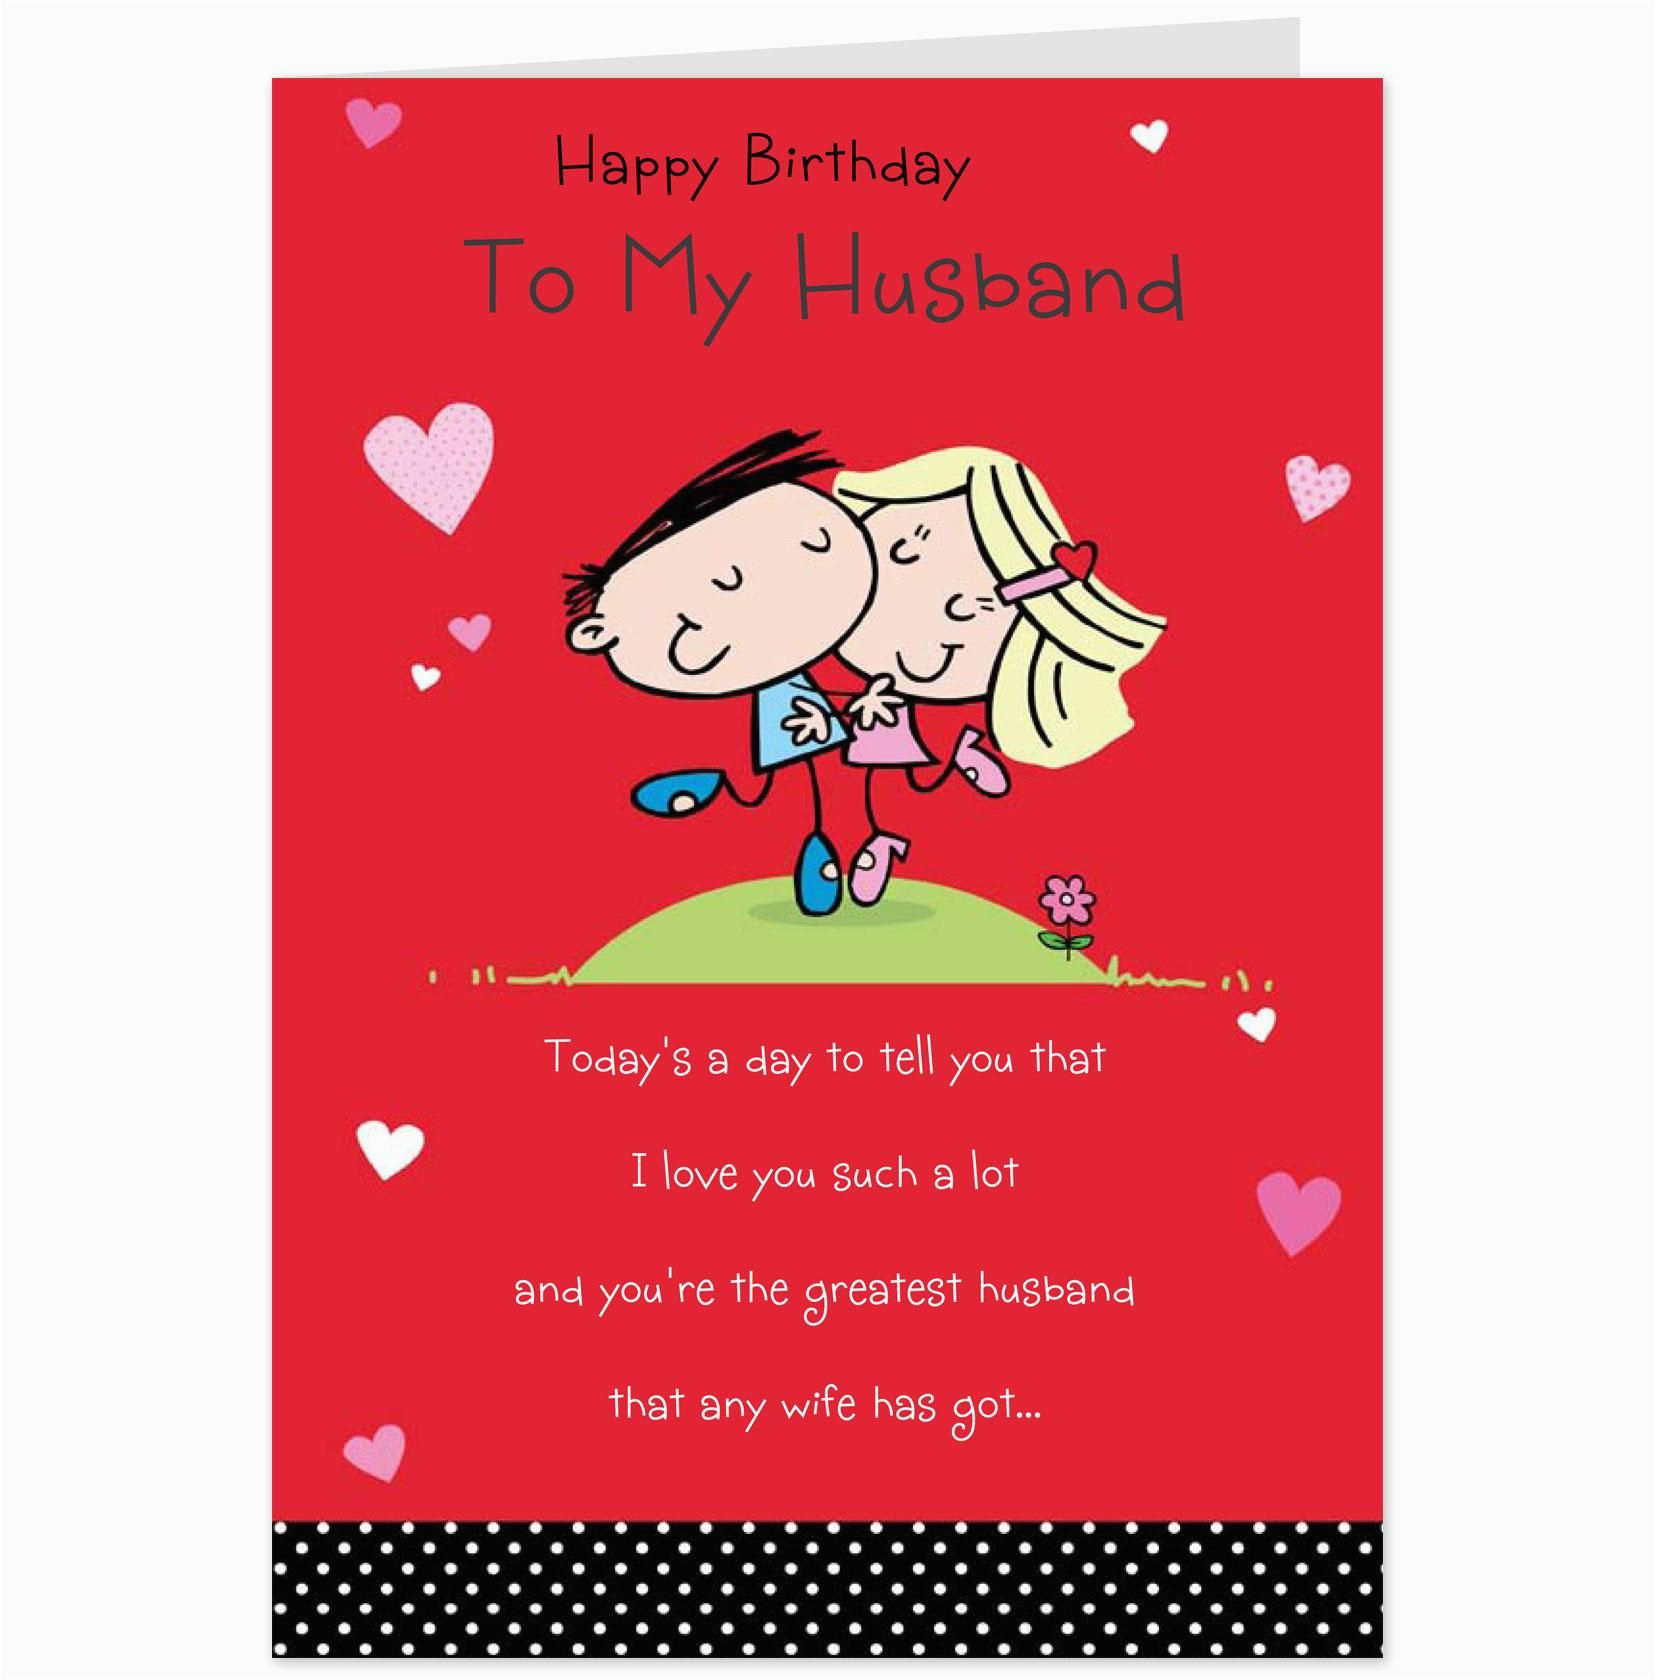 Free Printable Birthday Cards For My Husband Birthday Invitations - Free Printable Romantic Birthday Cards